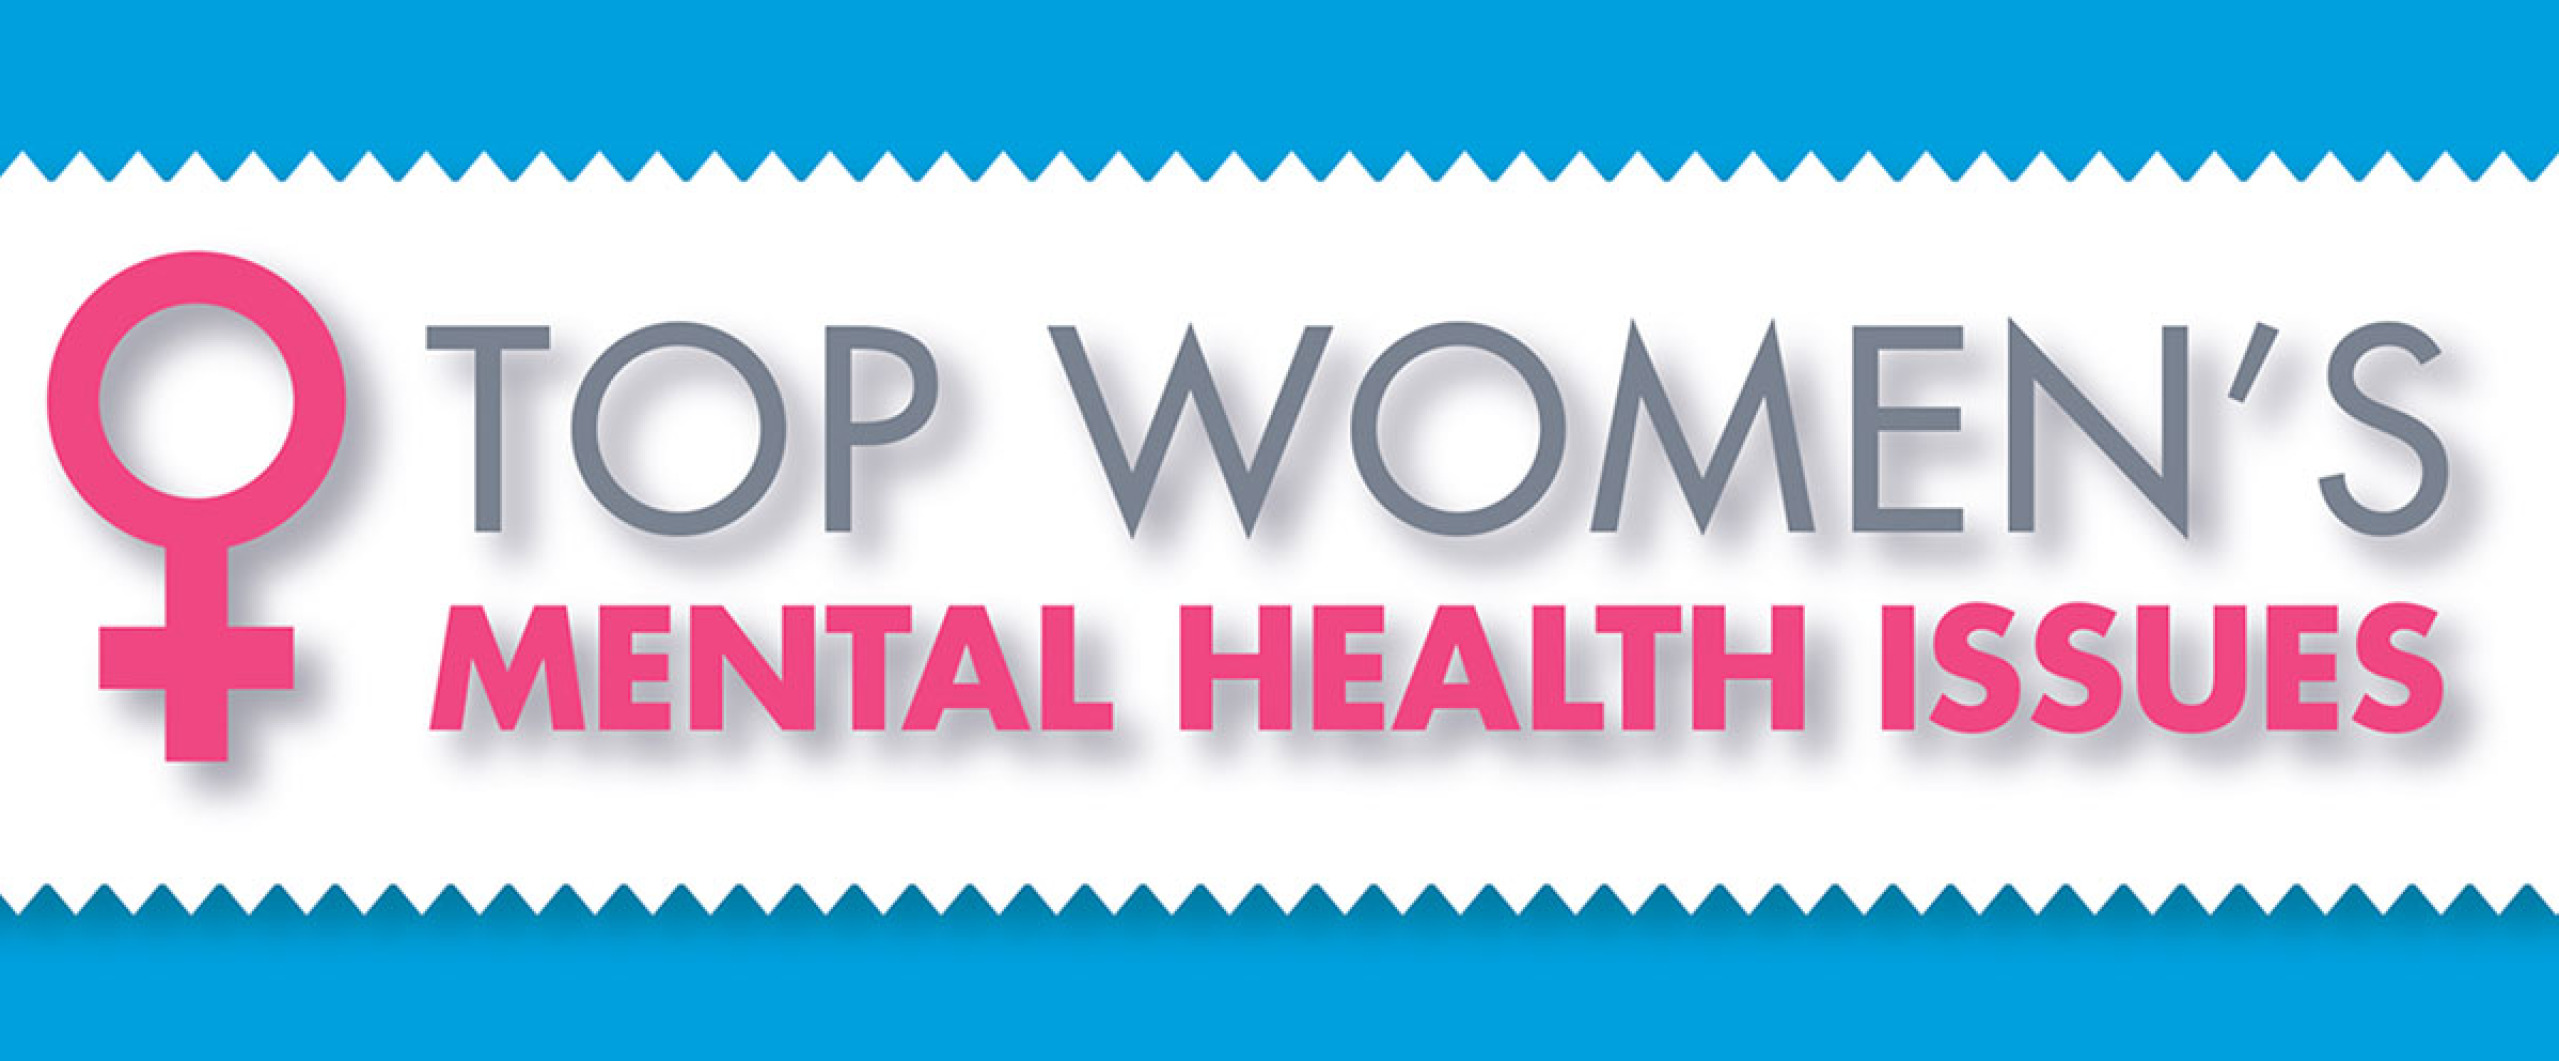 Top Women S Mental Health Issues